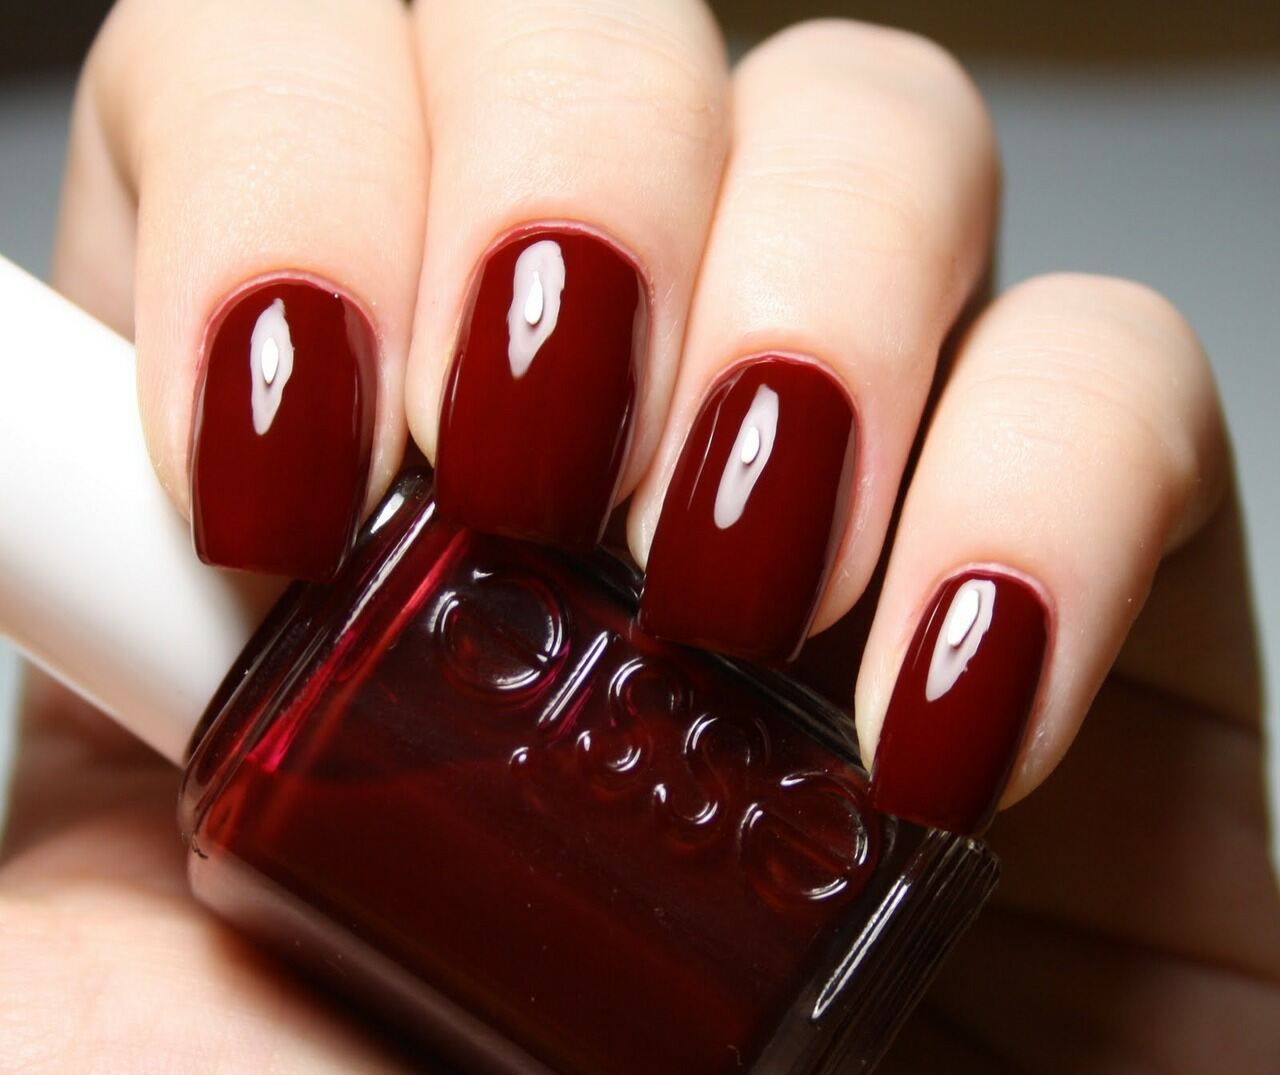 Essie burgundy dark red nail colour nail polish in \